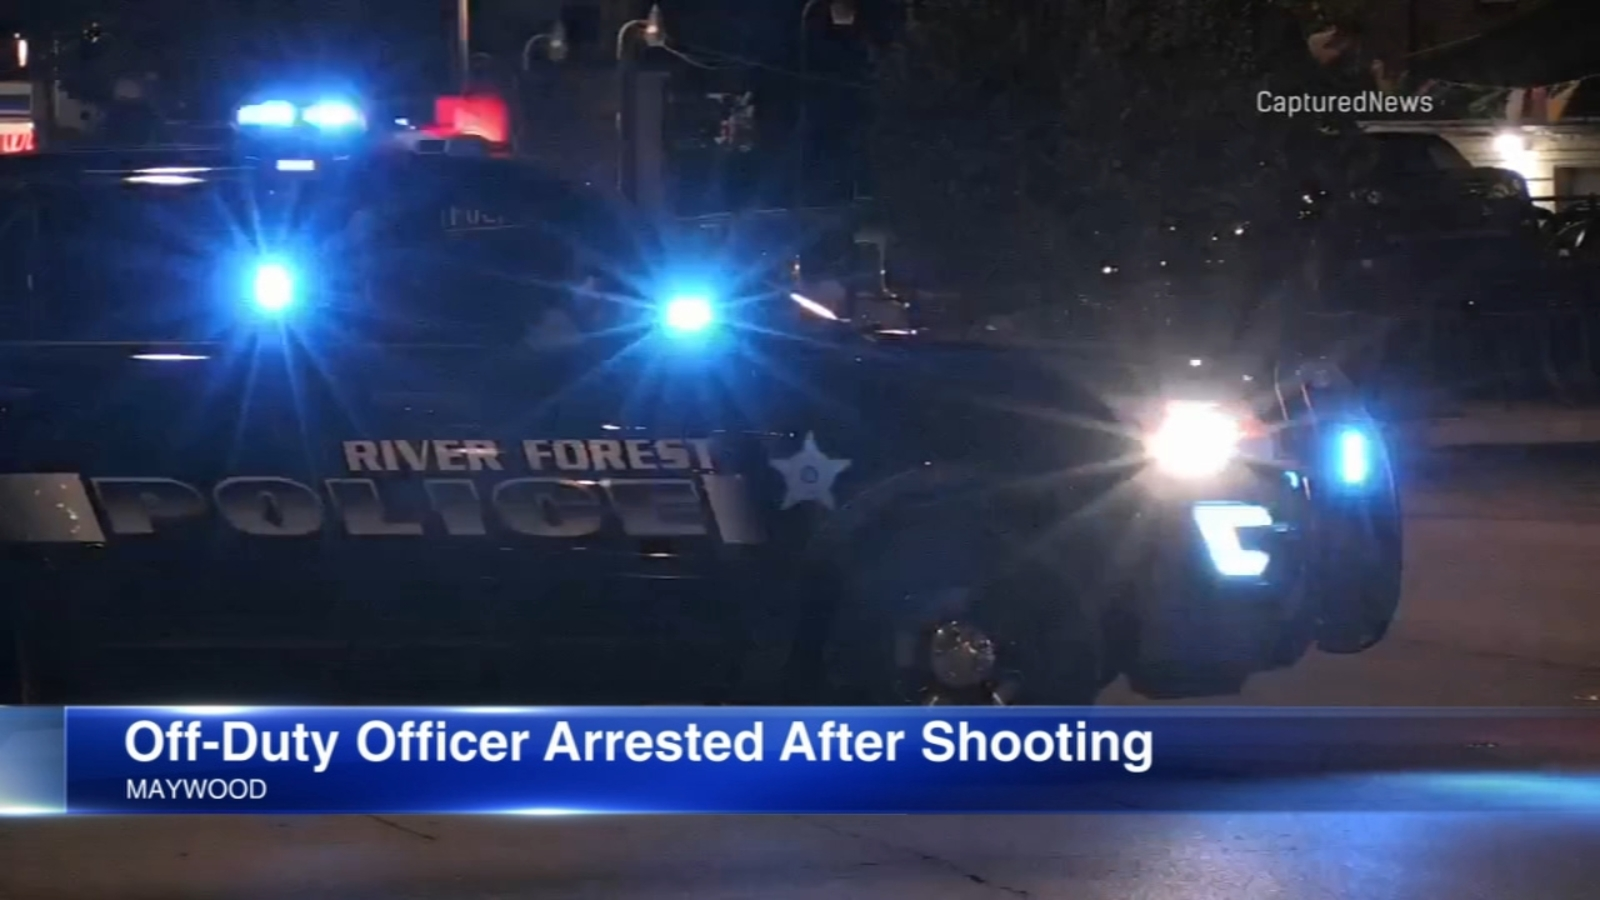 Melrose Park police officer in custody for off-duty fatal shooting in Maywood